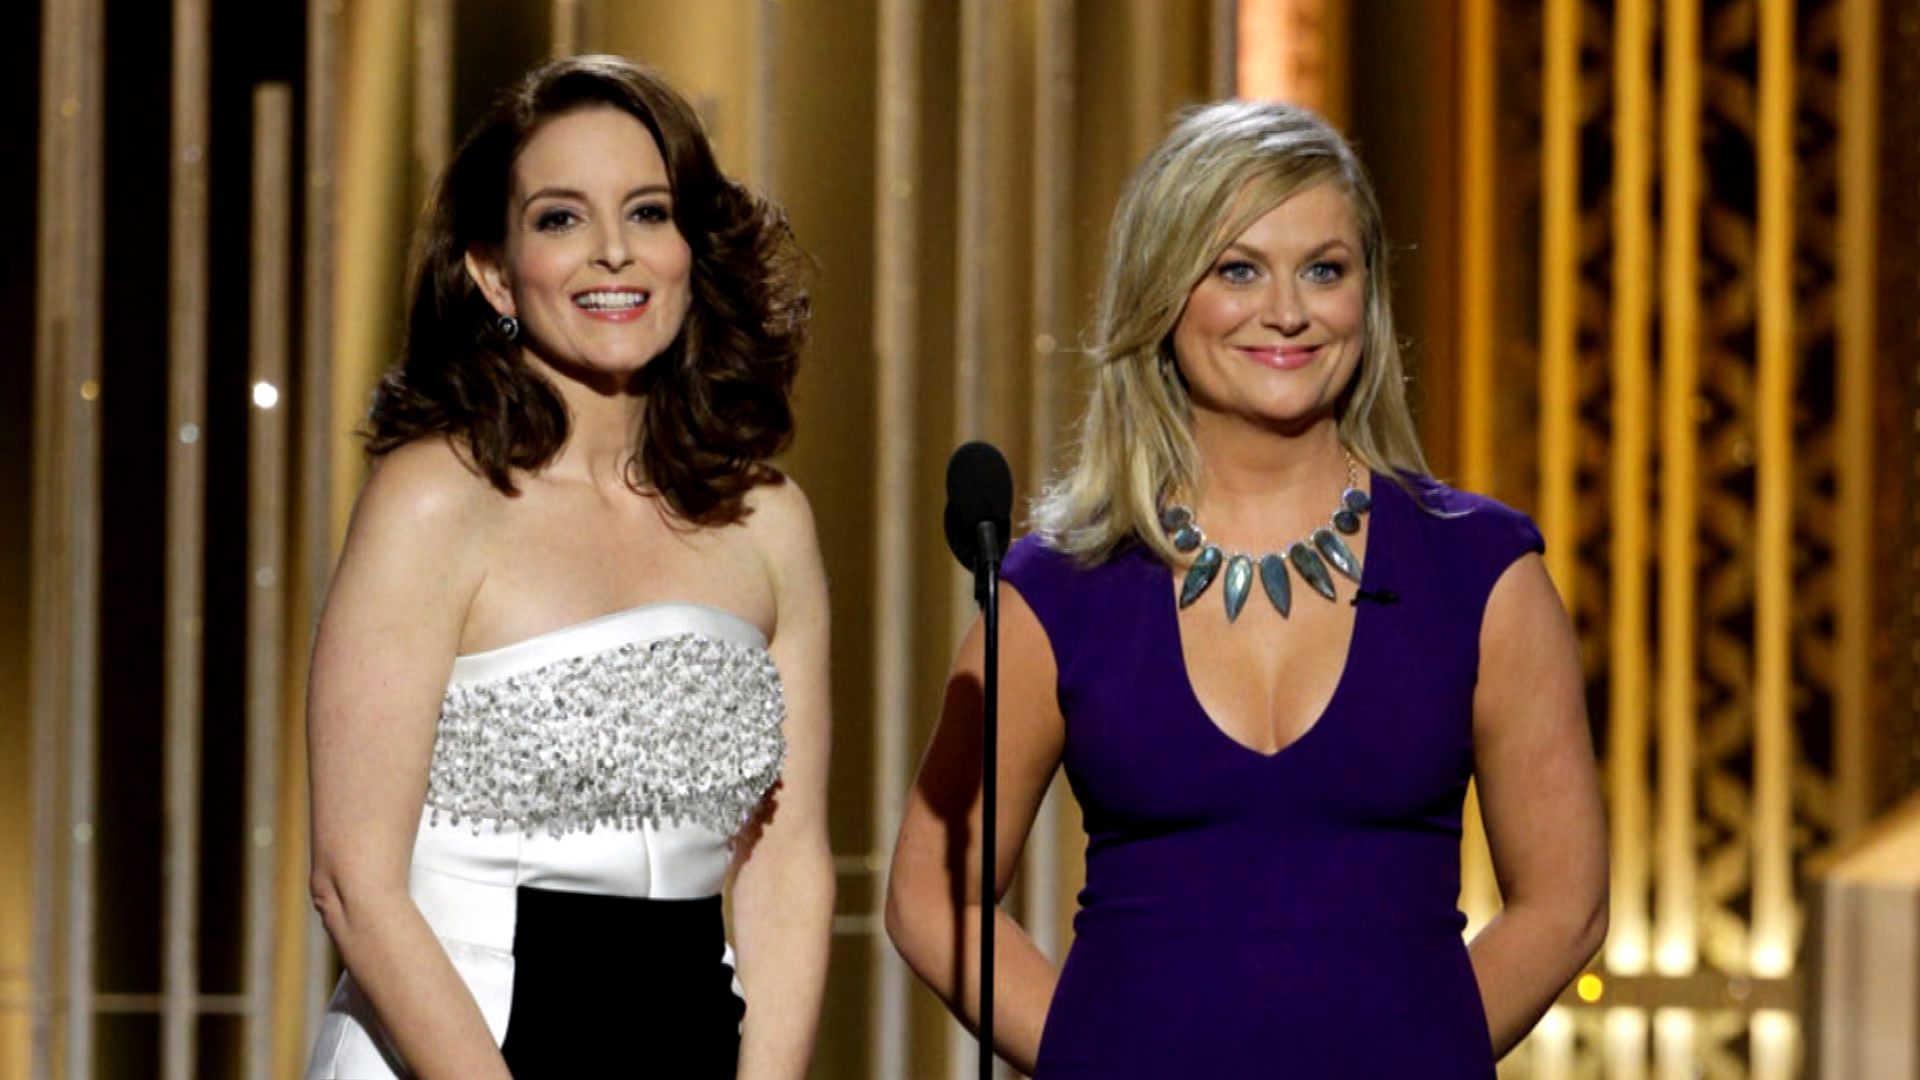 Brave comedy at the Golden Globes